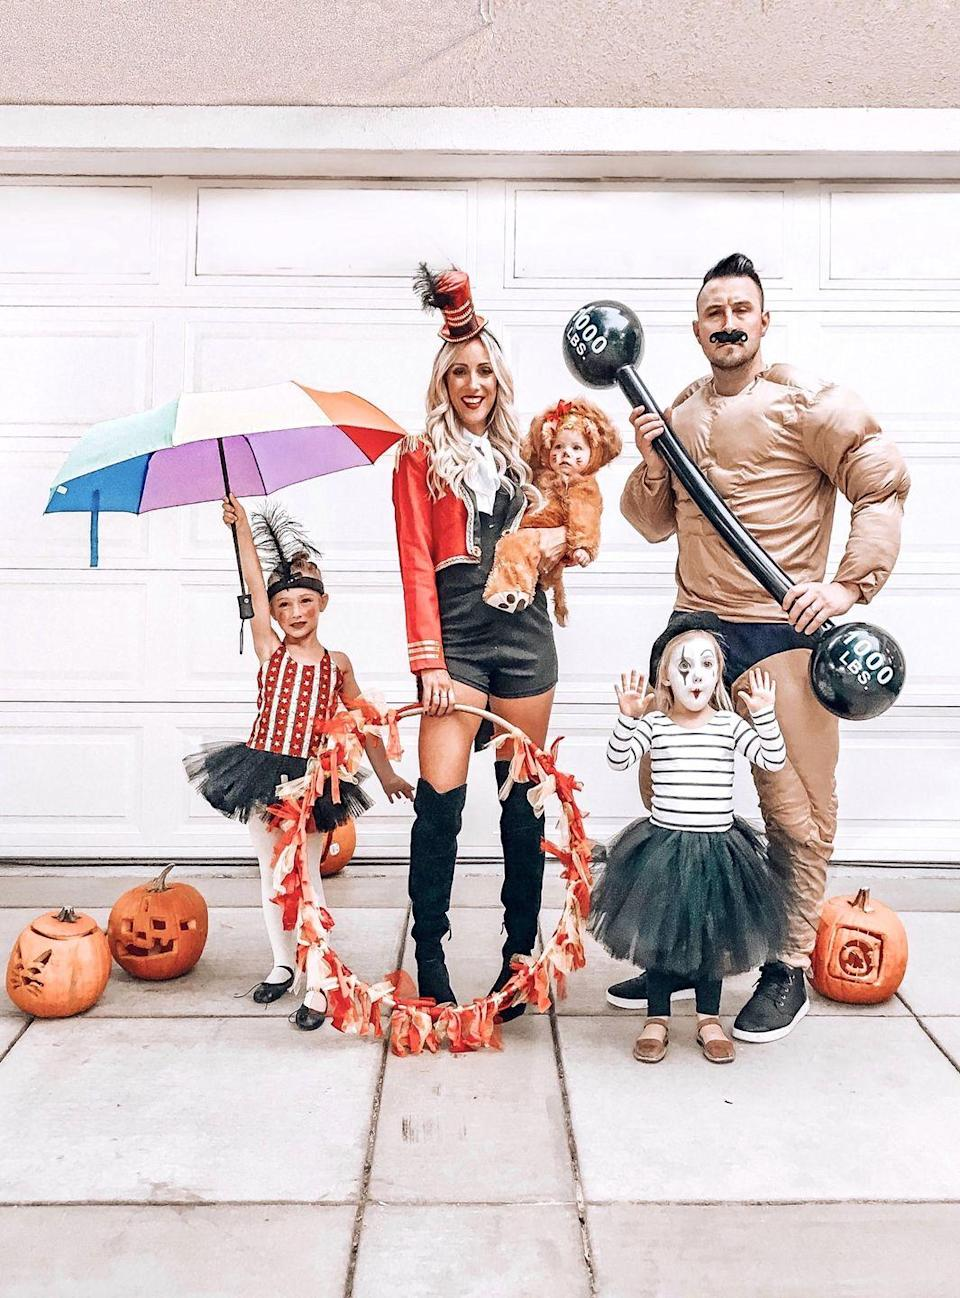 """<p>Go all out and make your circus-inspired costume a family affair. Everyone can suit up and join the show! </p><p><strong>See more at <a href=""""https://www.instagram.com/p/BppWHS7B3Qn/"""" rel=""""nofollow noopener"""" target=""""_blank"""" data-ylk=""""slk:@sarah_lit"""" class=""""link rapid-noclick-resp"""">@sarah_lit</a>. </strong></p><p><a class=""""link rapid-noclick-resp"""" href=""""https://www.amazon.com/Rain-Mate-Compact-Travel-Umbrella-Reinforced/dp/B071JR3HFX/ref=sr_1_2?tag=syn-yahoo-20&ascsubtag=%5Bartid%7C10050.g.29402076%5Bsrc%7Cyahoo-us"""" rel=""""nofollow noopener"""" target=""""_blank"""" data-ylk=""""slk:SHOP UMBRELLAS"""">SHOP UMBRELLAS</a></p>"""